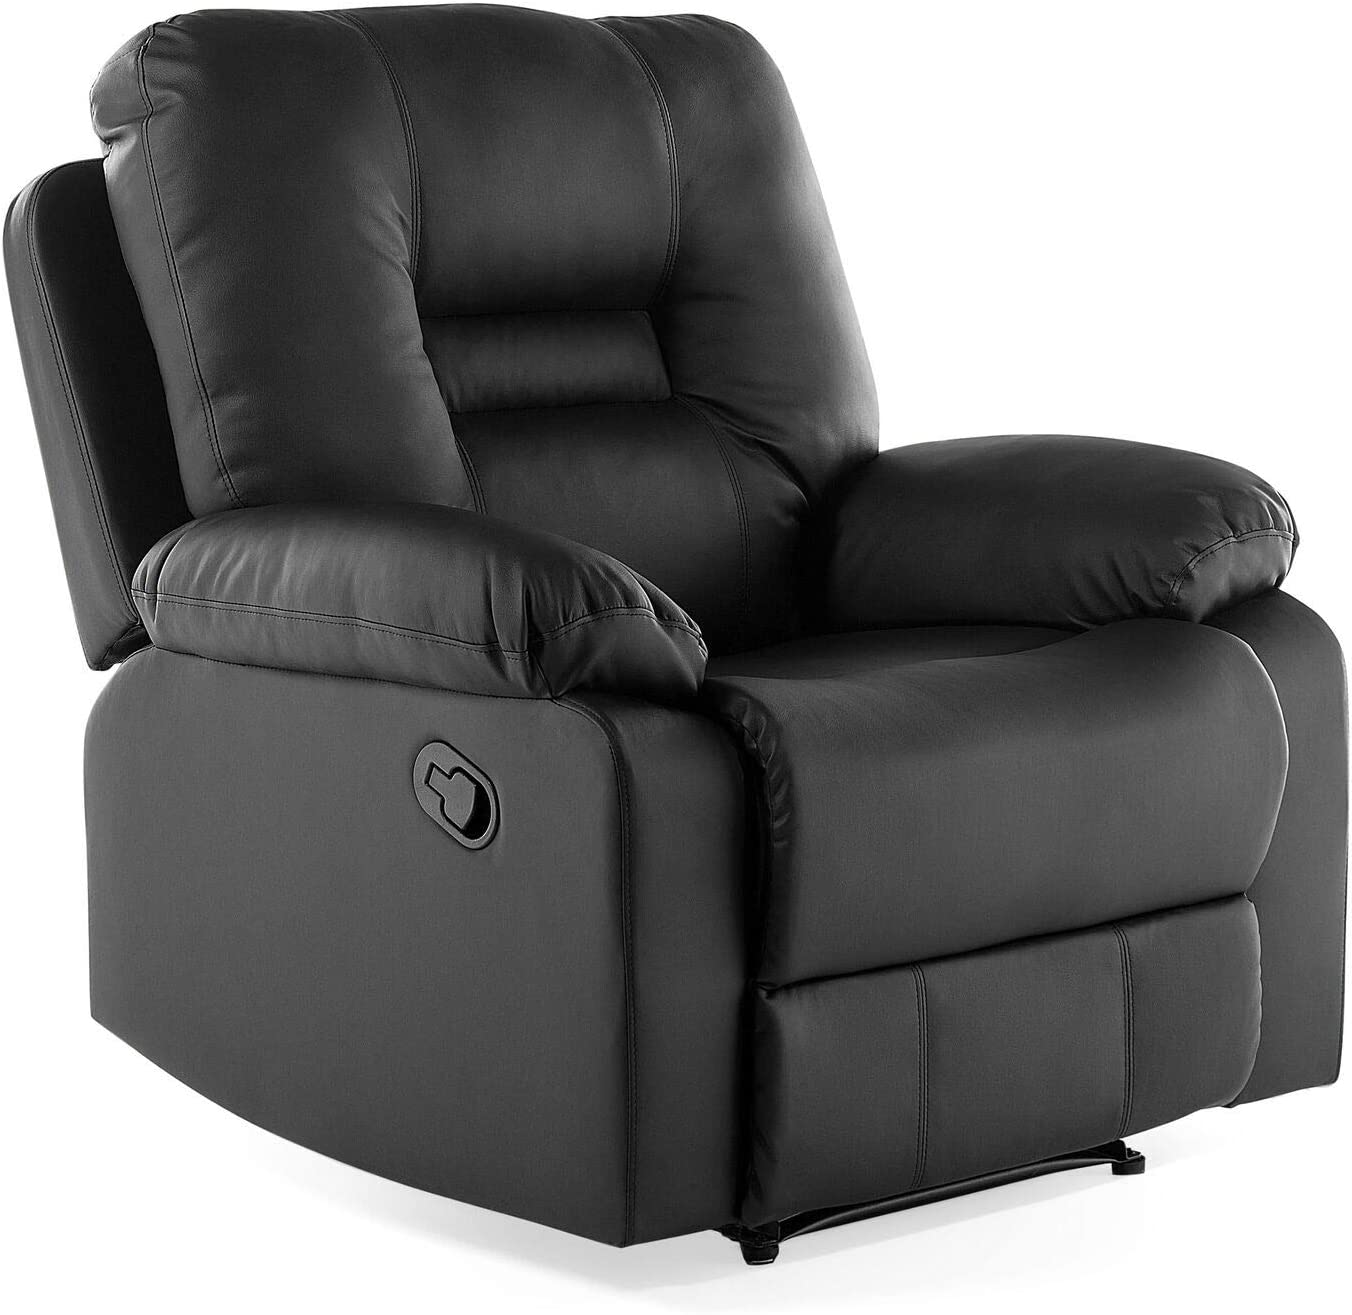 Modern Faux Leather Recliner Chair Manual Reclining Padded